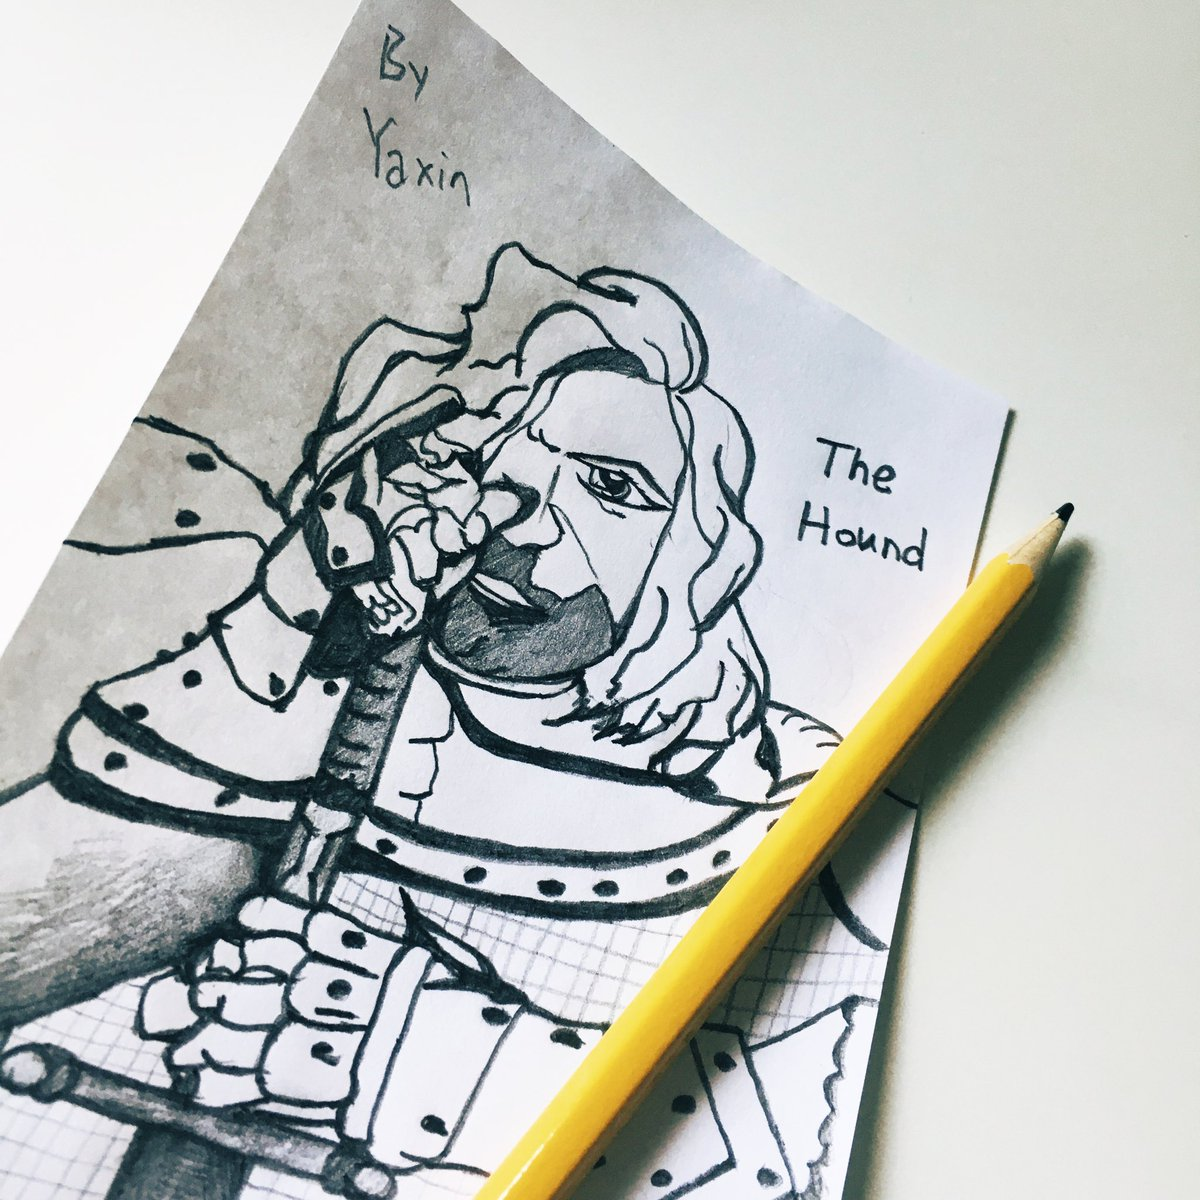 #GoT #thehound People think he's a support, he's actually an ADC. ✨🥱 https://t.co/uuDnTFvj0Z